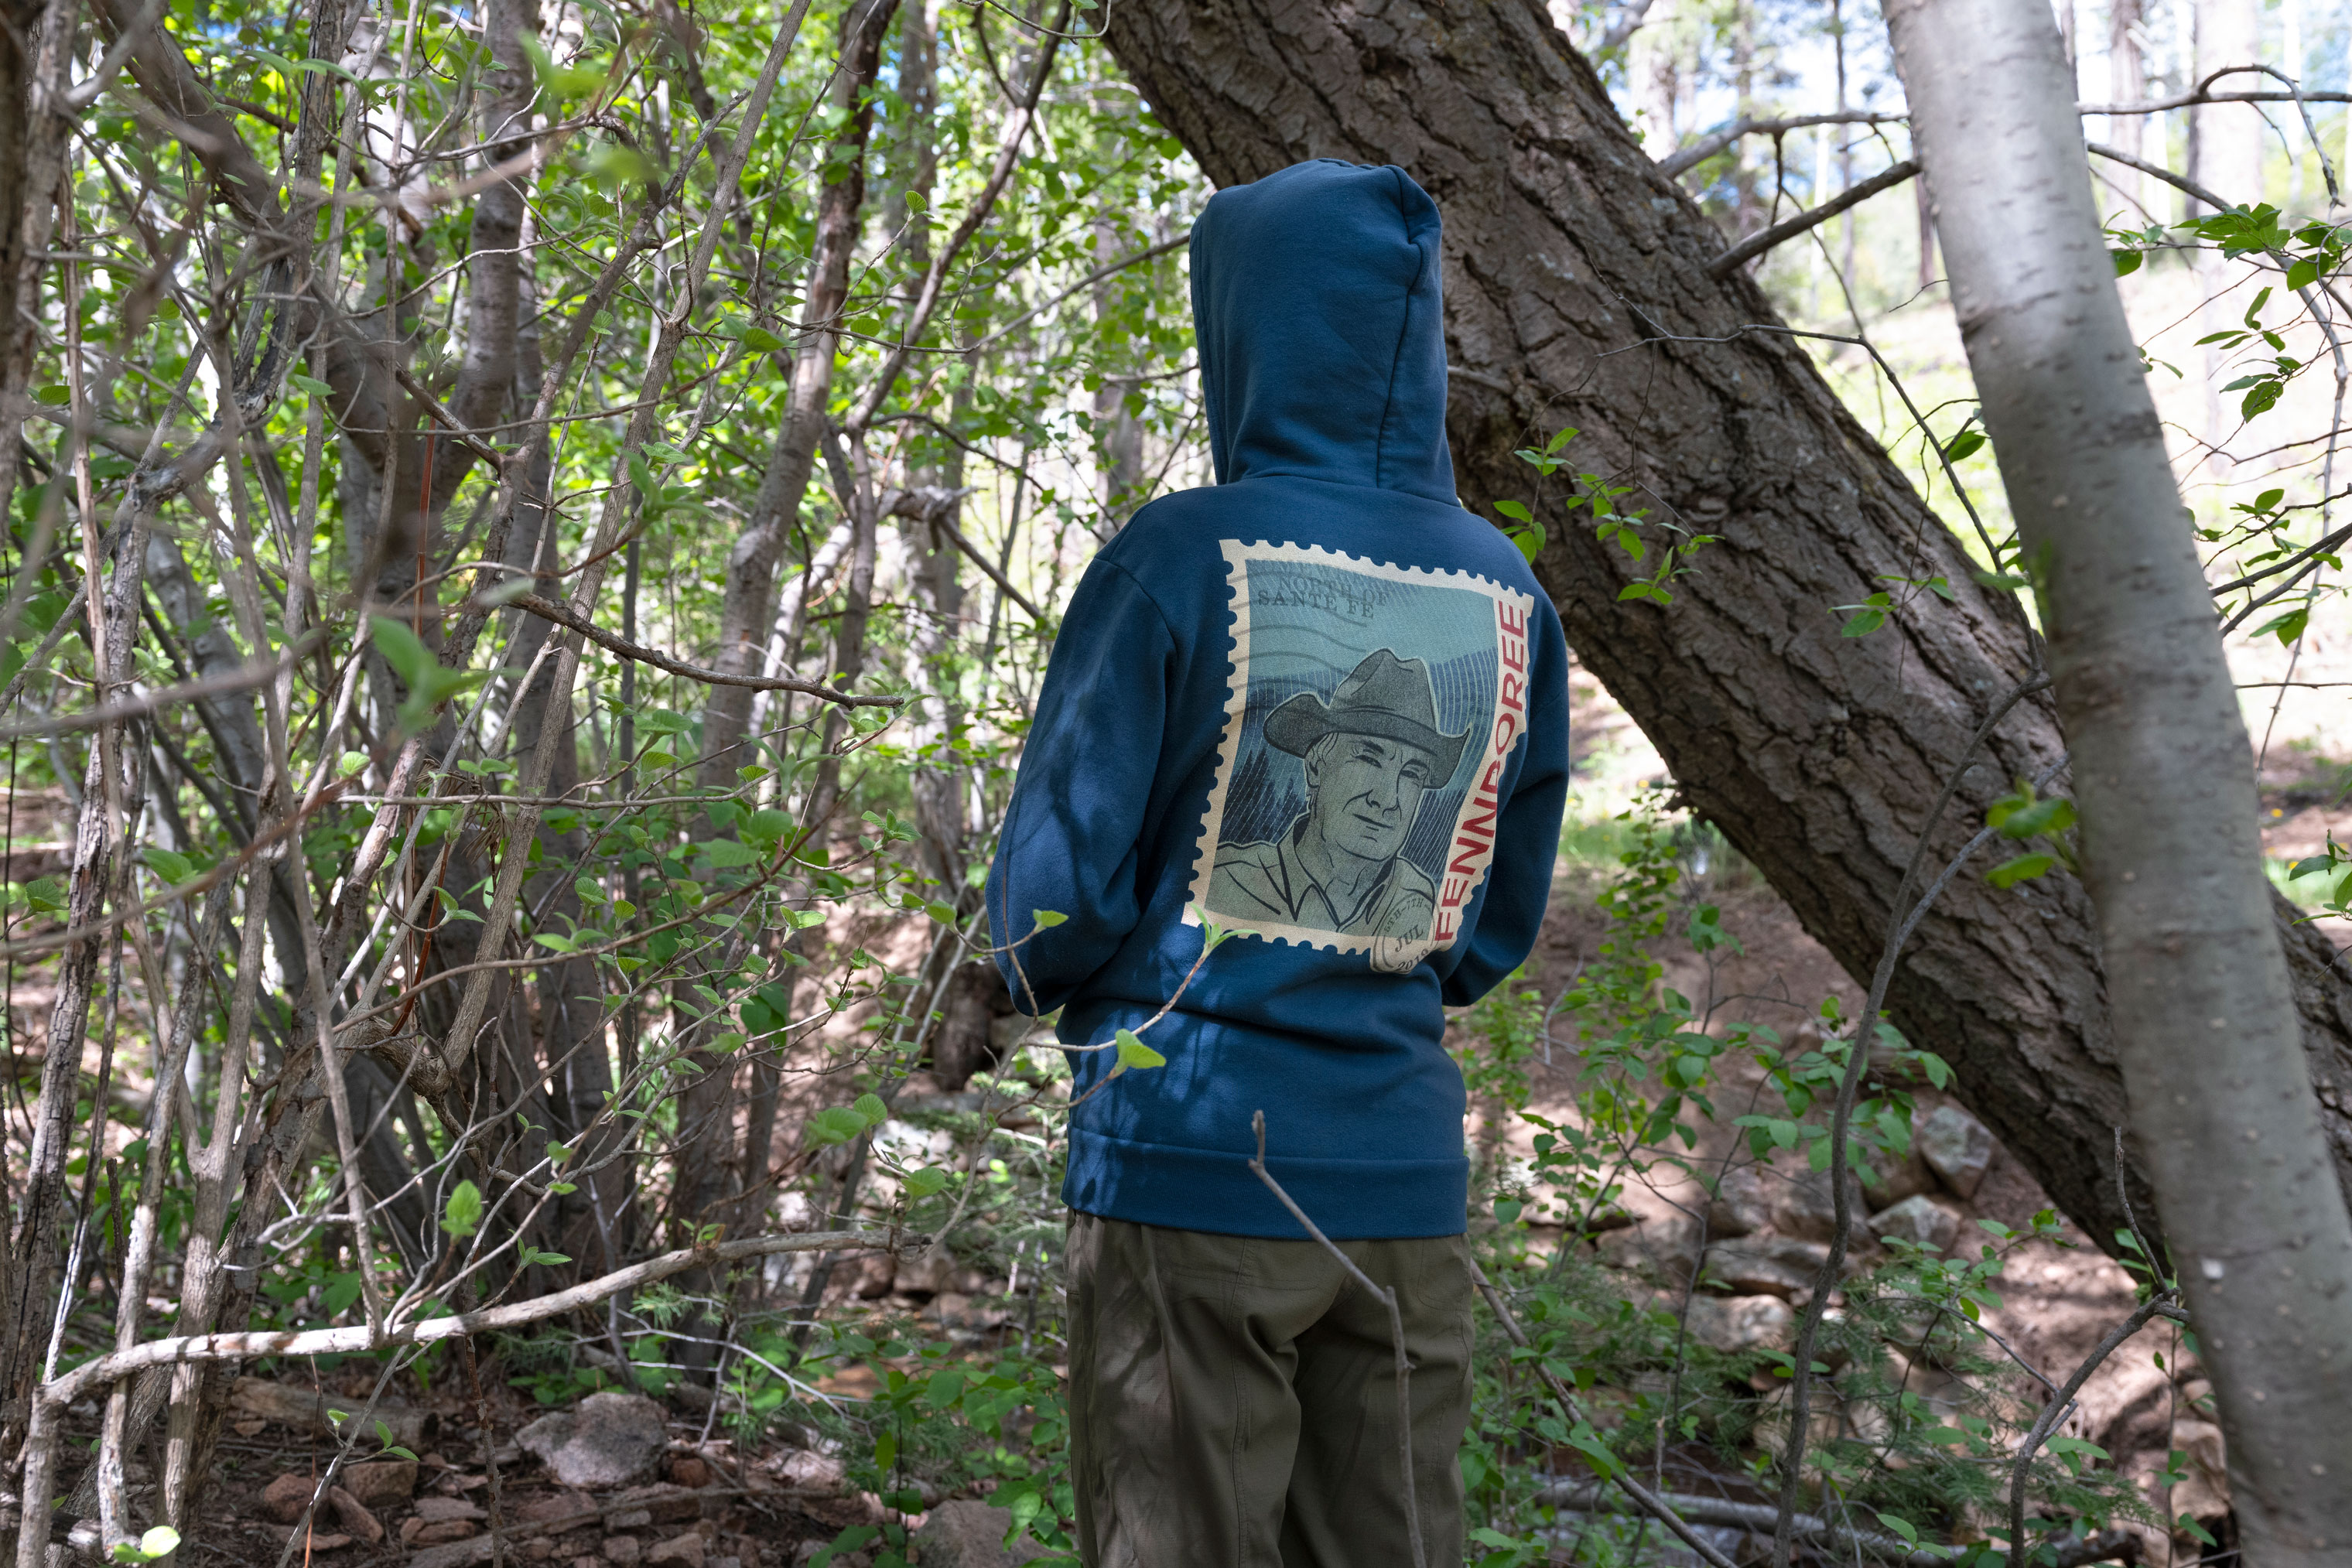 Sacha Johnston wearing her Fennboree sweatshirt in Hyde Park in the Santa Fe National Forest, May 28, 2019.